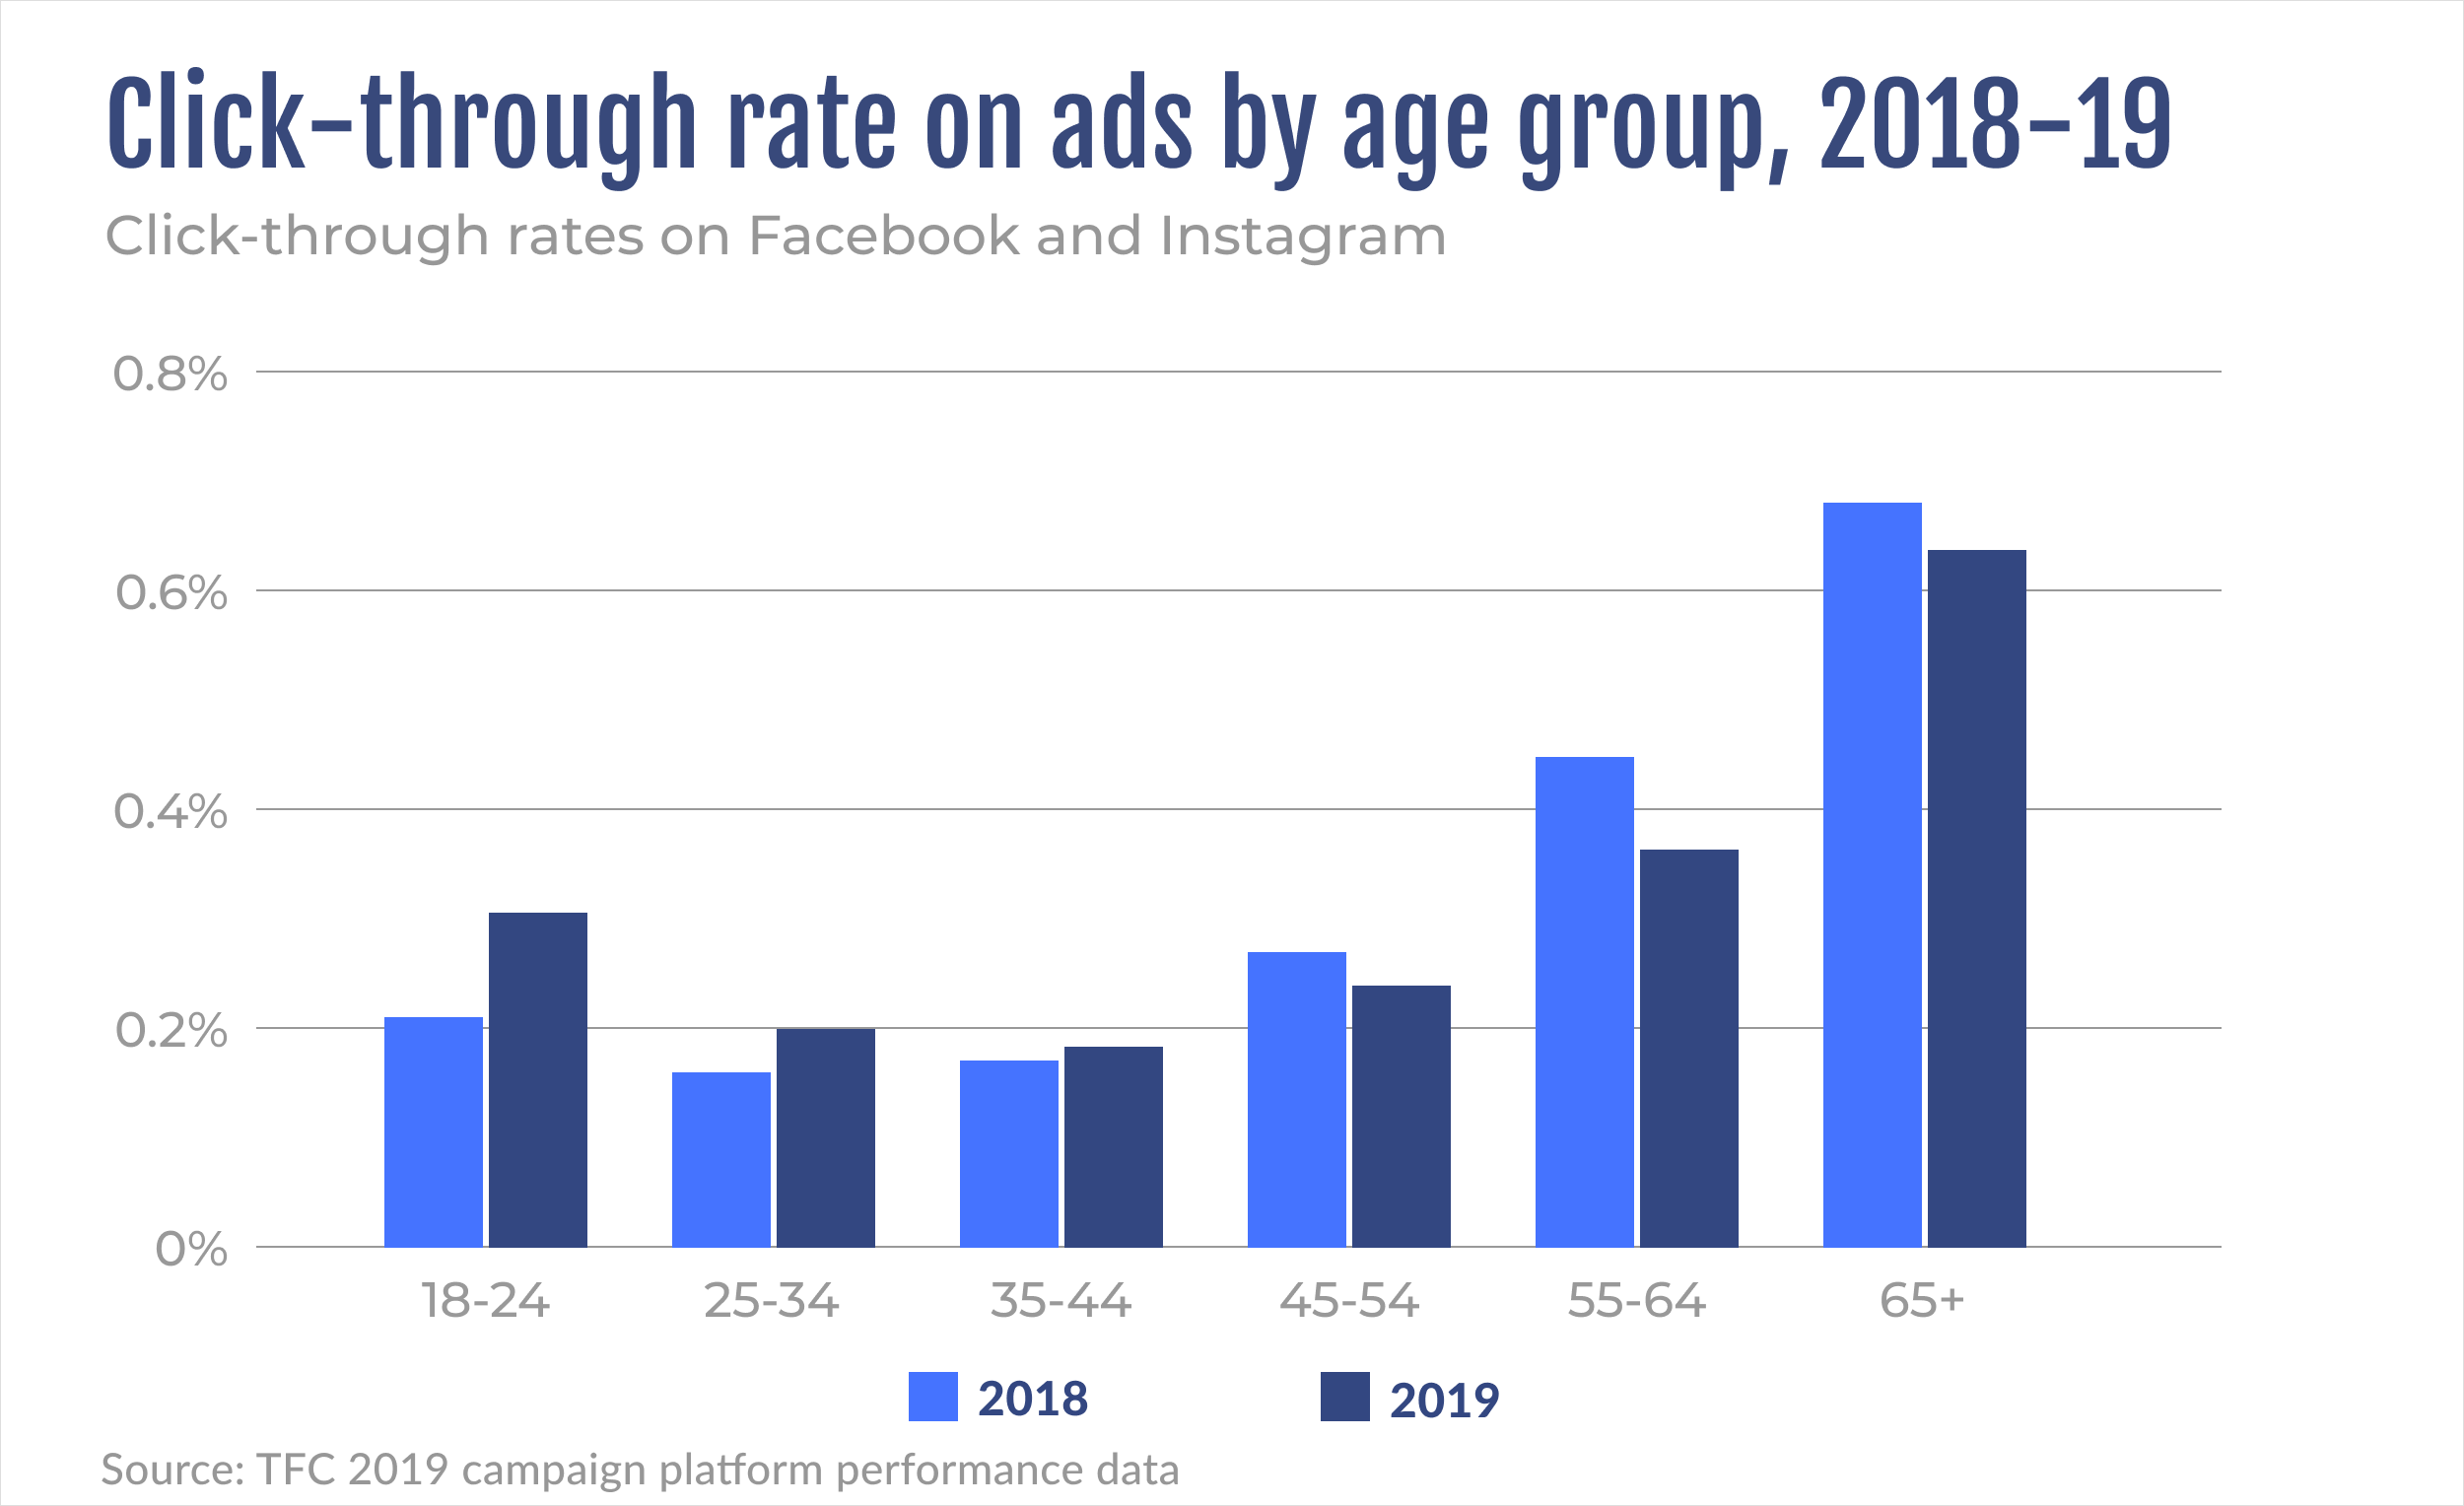 Click-through rates on ads by age group, 2018-2019